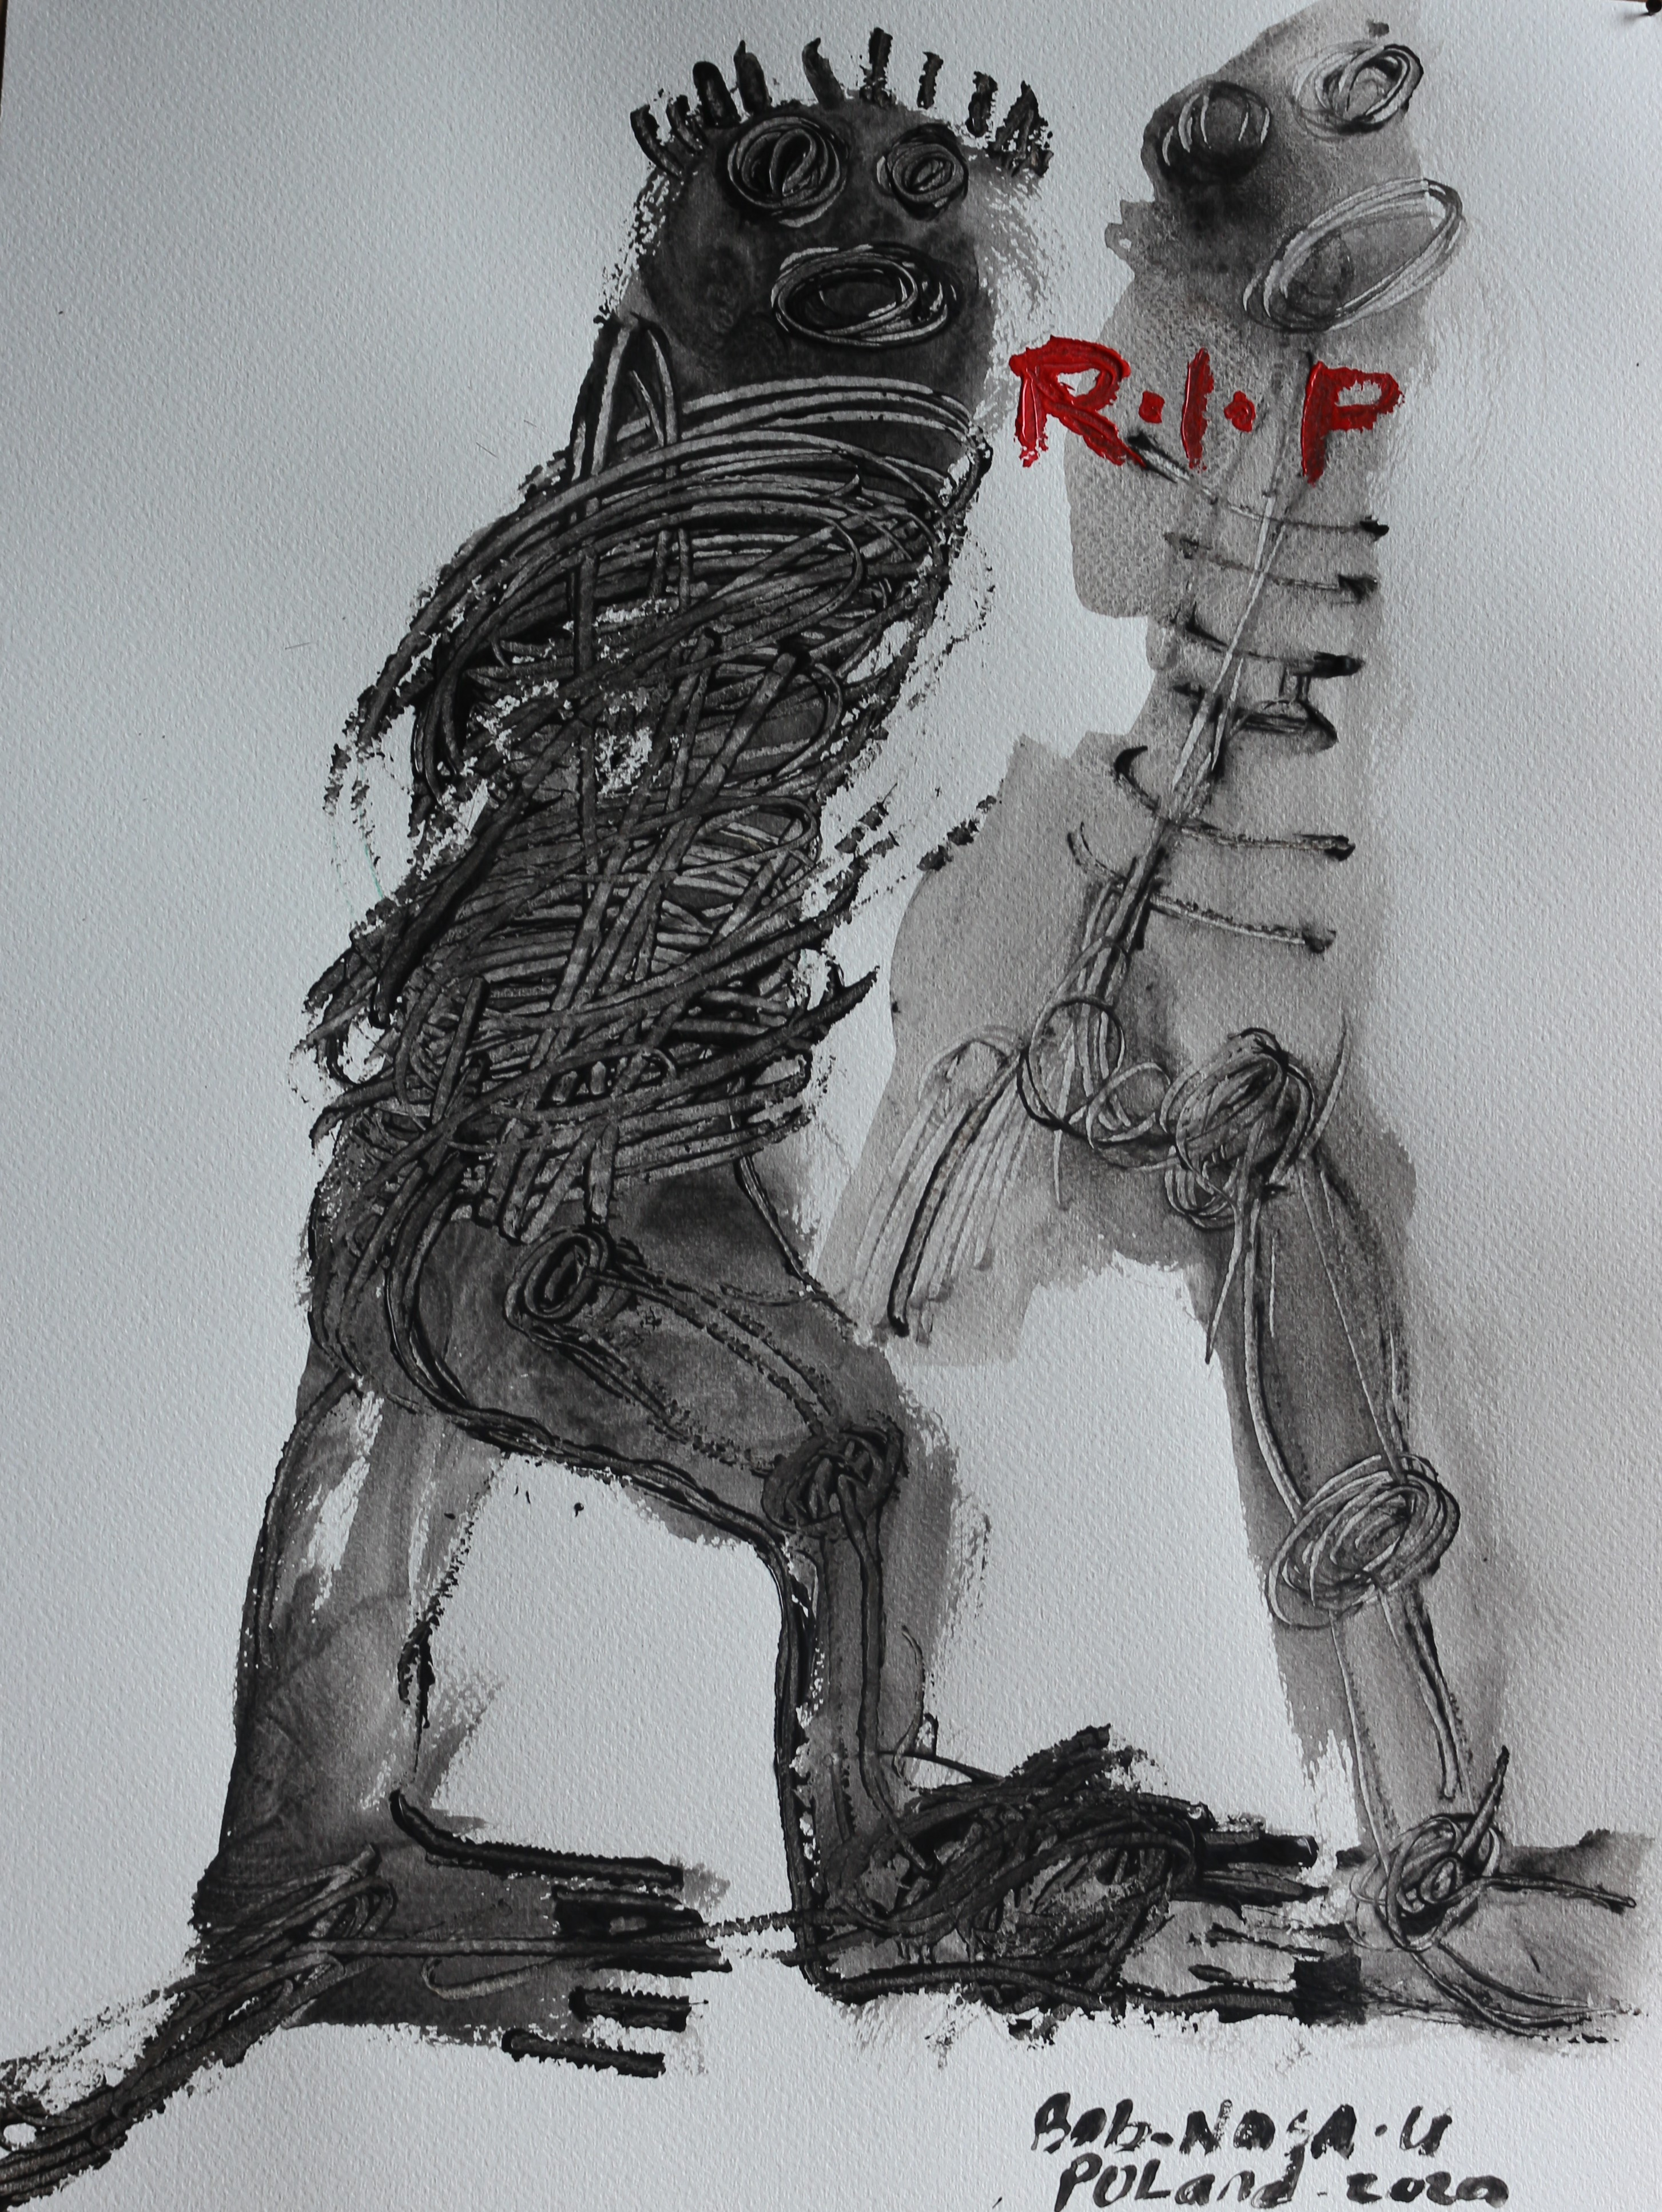 From the series: R.I.P, 2020, acrylic on watercolour paper